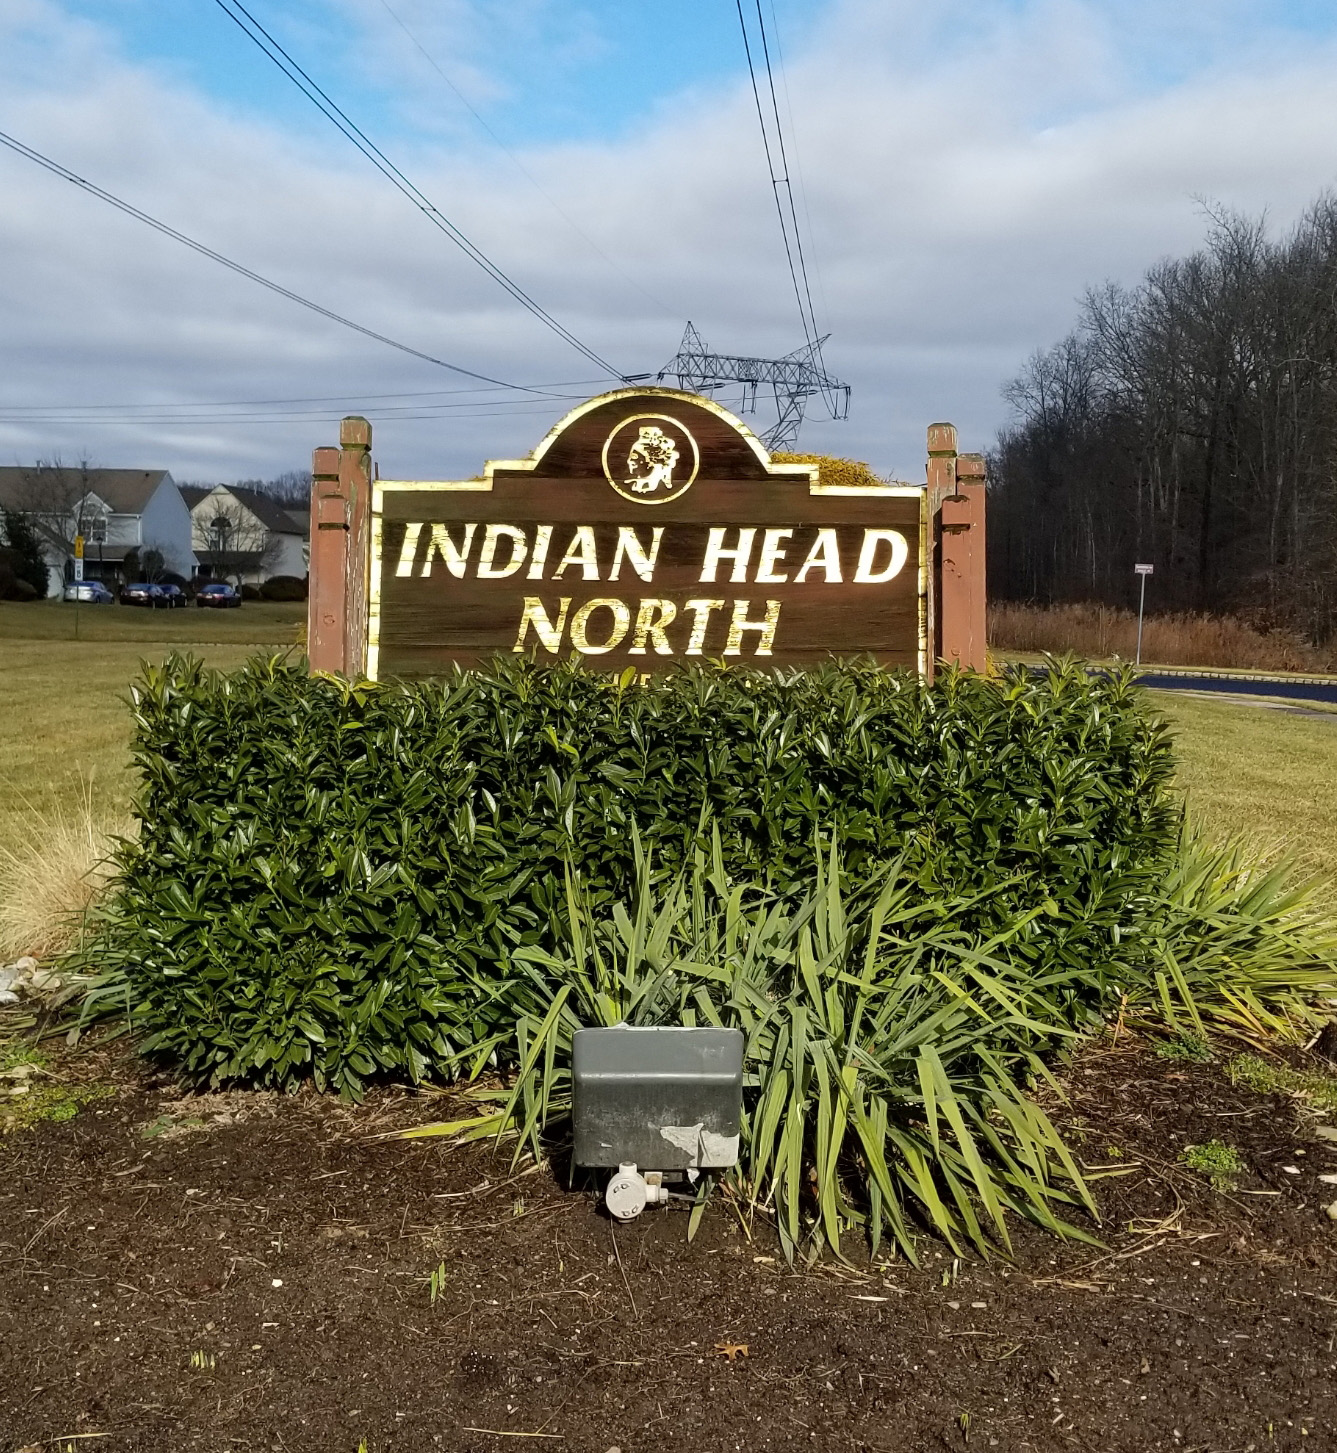 Indian Head Condos North Brunswick sign